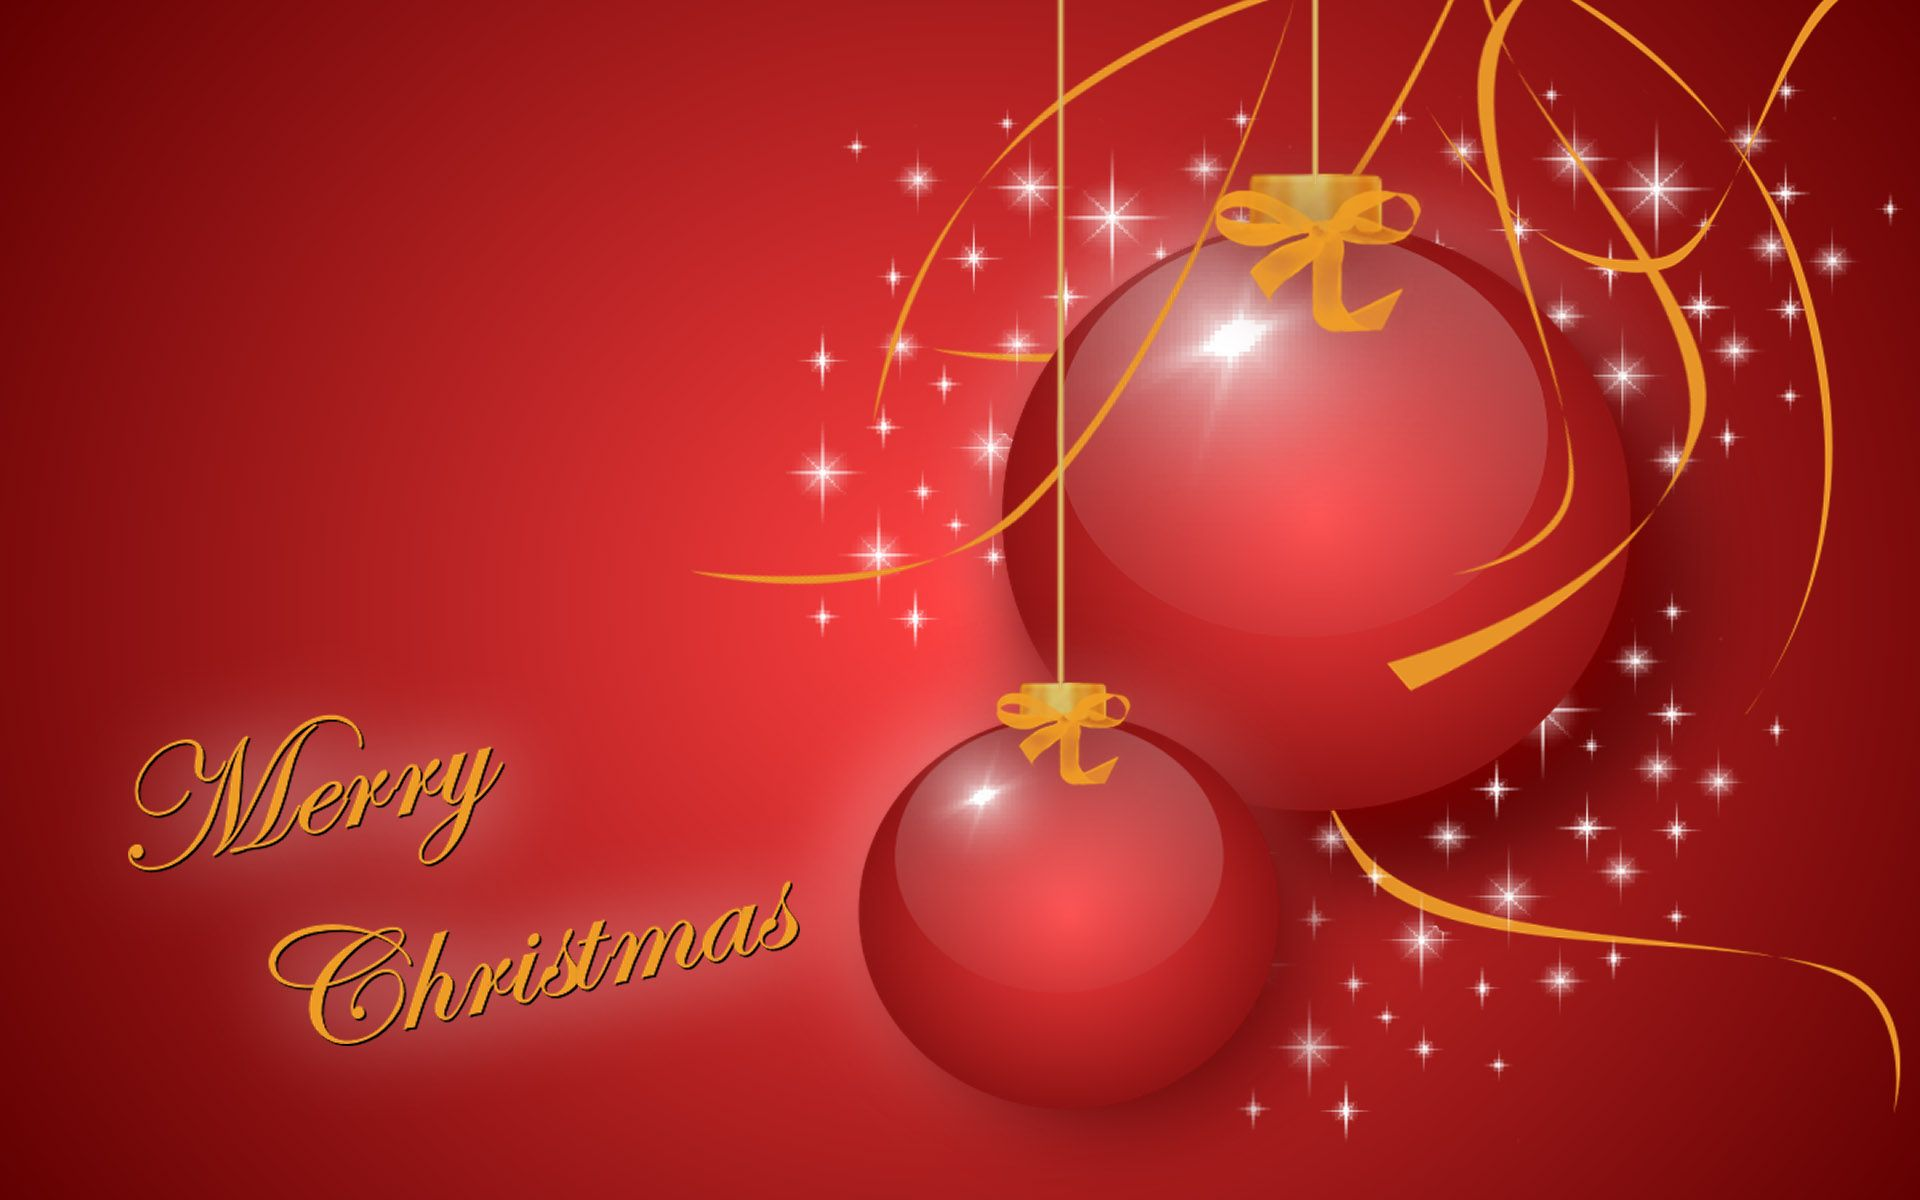 free christmas background clipart Christmas HD Wallpaper